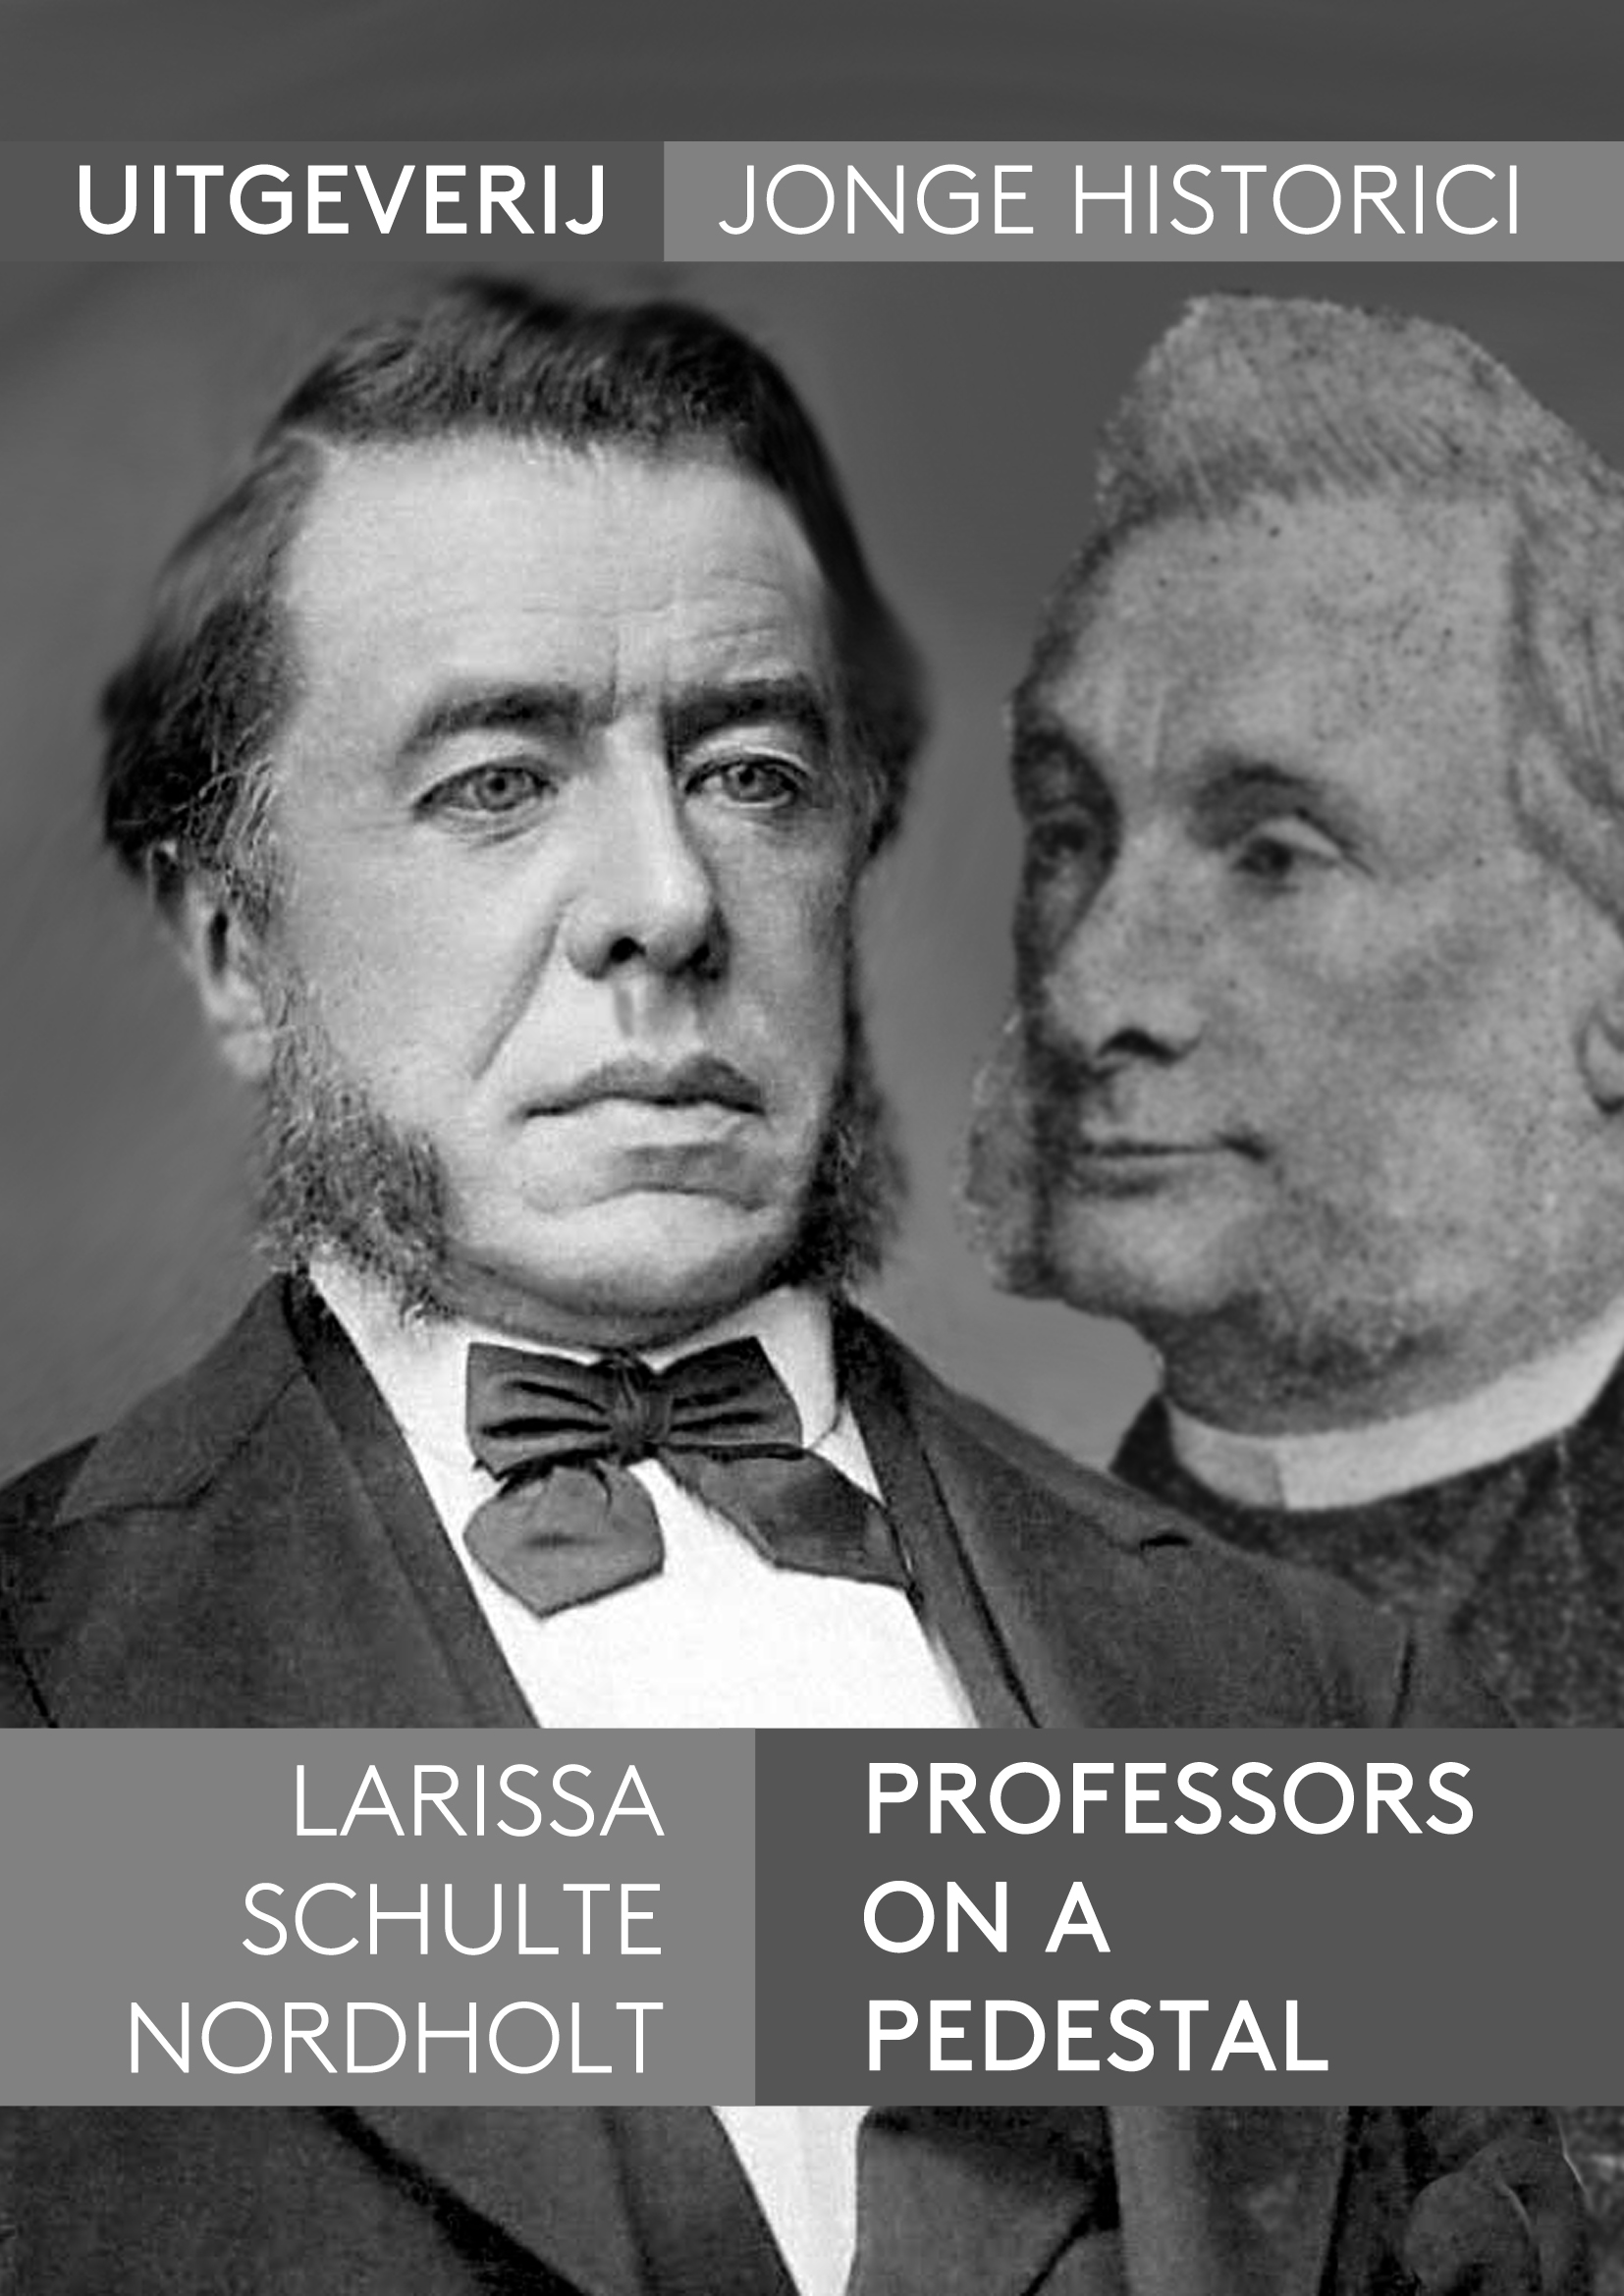 Larissa Schulte Nordholt, Professors on a pedestal. The perception of virtues in necrologies written about Robert Fruin and Johannes Gerardus Rijk Acquoy